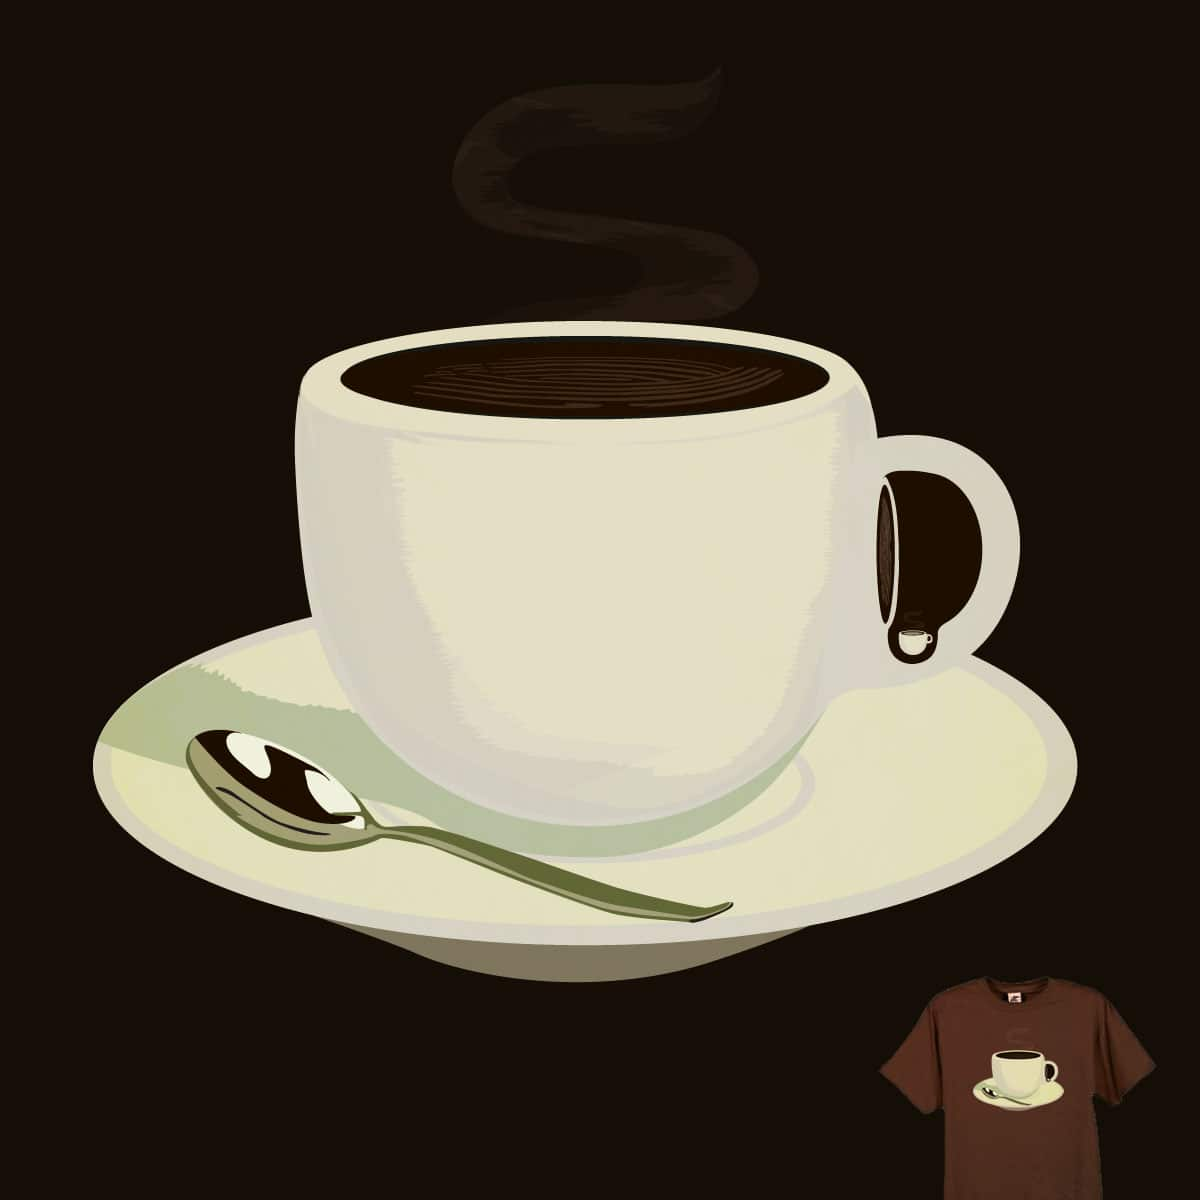 Coffeenception by Montro on Threadless